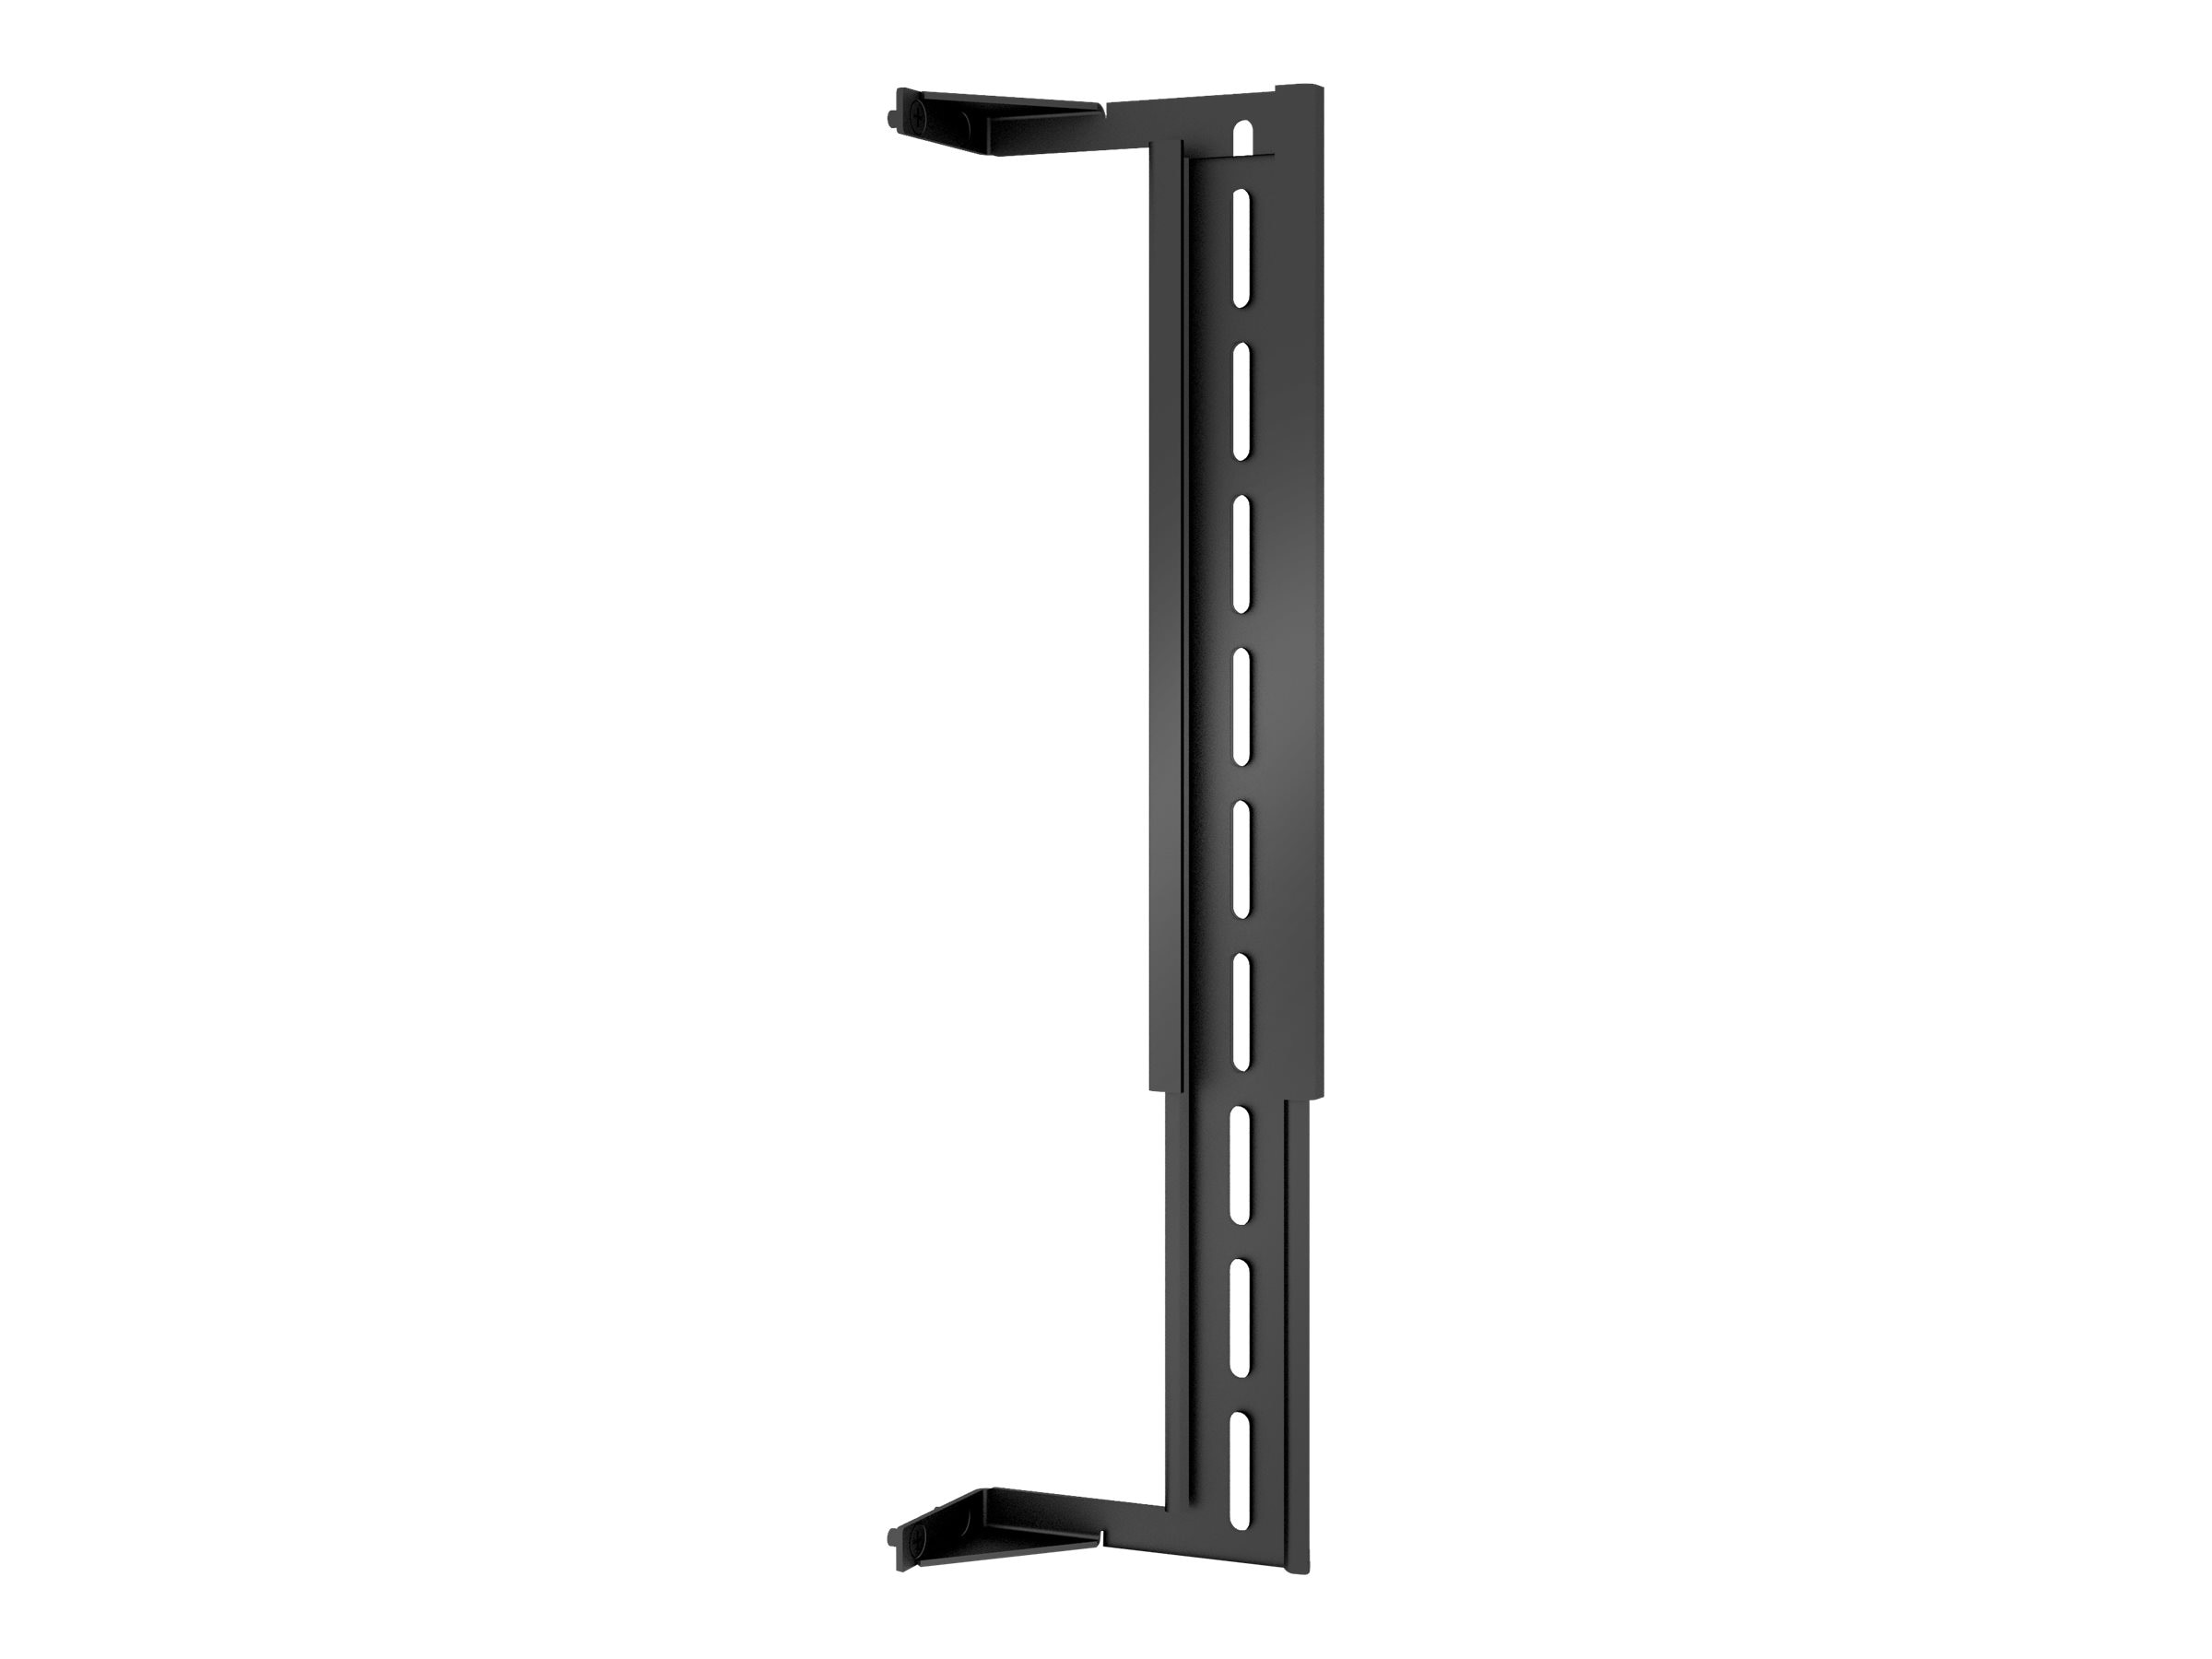 APC Cord Retention Bracket for AP8000 Series Rack PDUs, AP8069, 17817931, Rack Cable Management